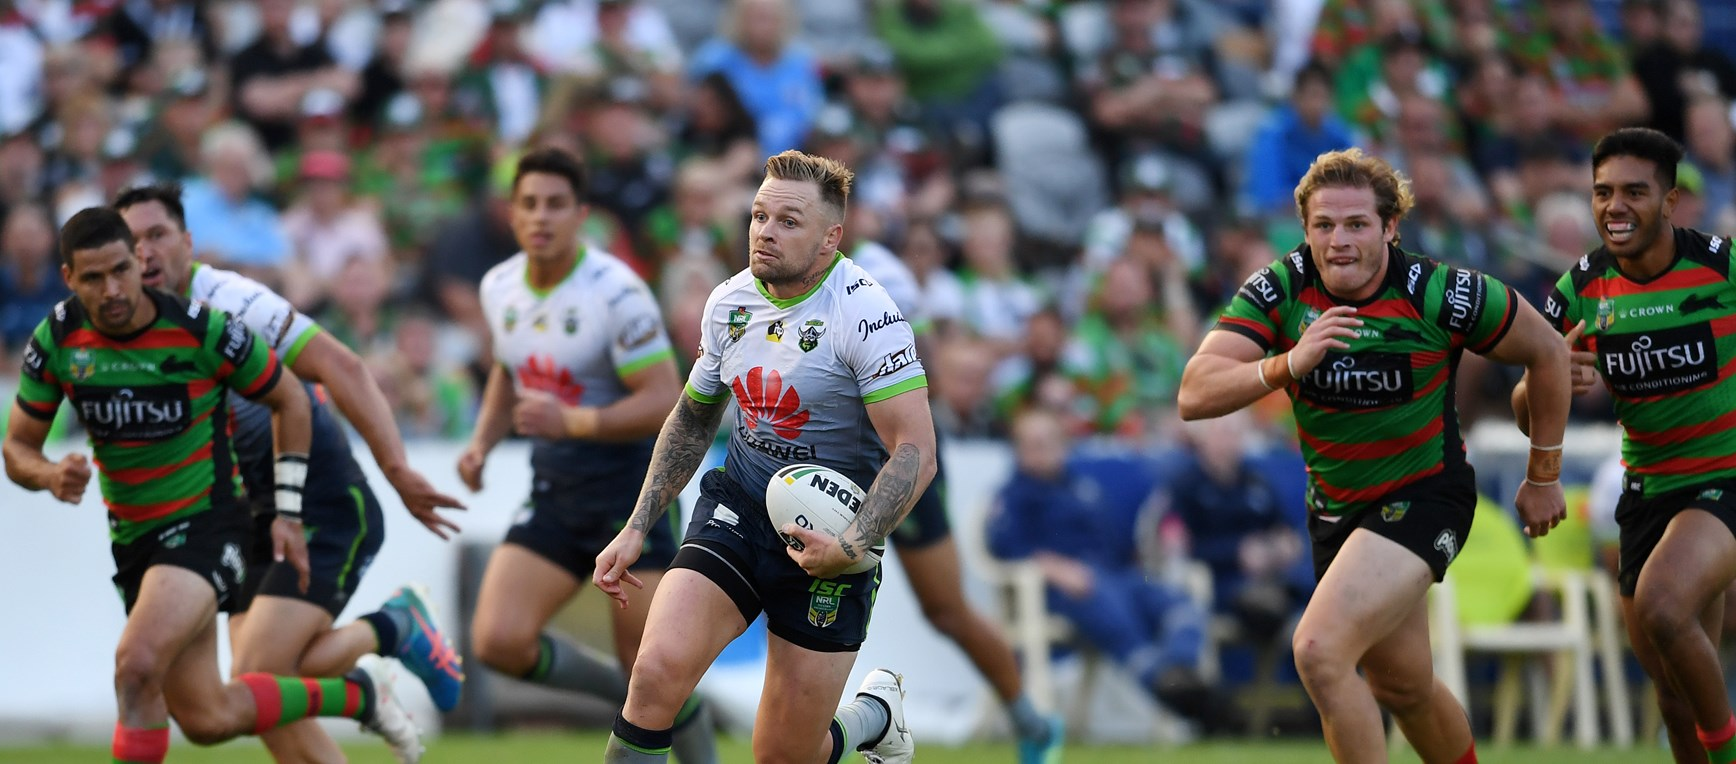 In pictures: Raiders v Rabbitohs